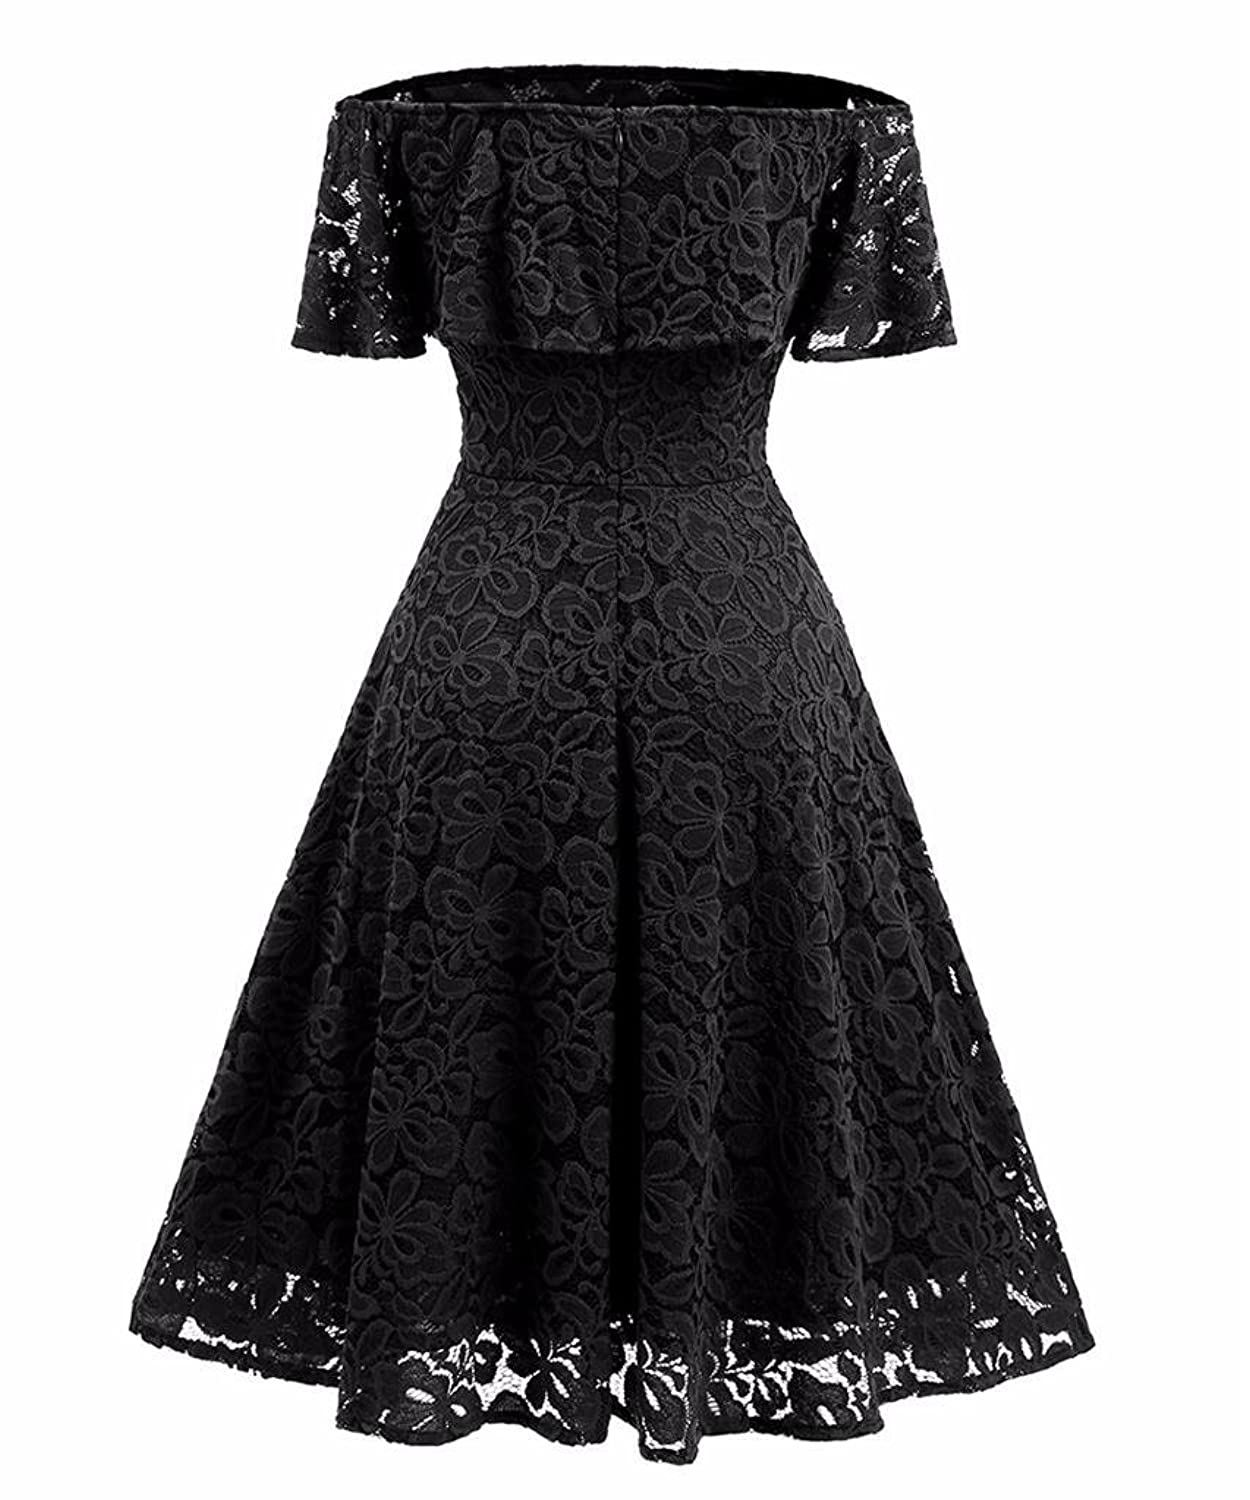 Changuan womens vintage floral lace off shoulder cocktail evening changuan womens vintage floral lace off shoulder cocktail evening party swing dress at amazon womens clothing store ombrellifo Images